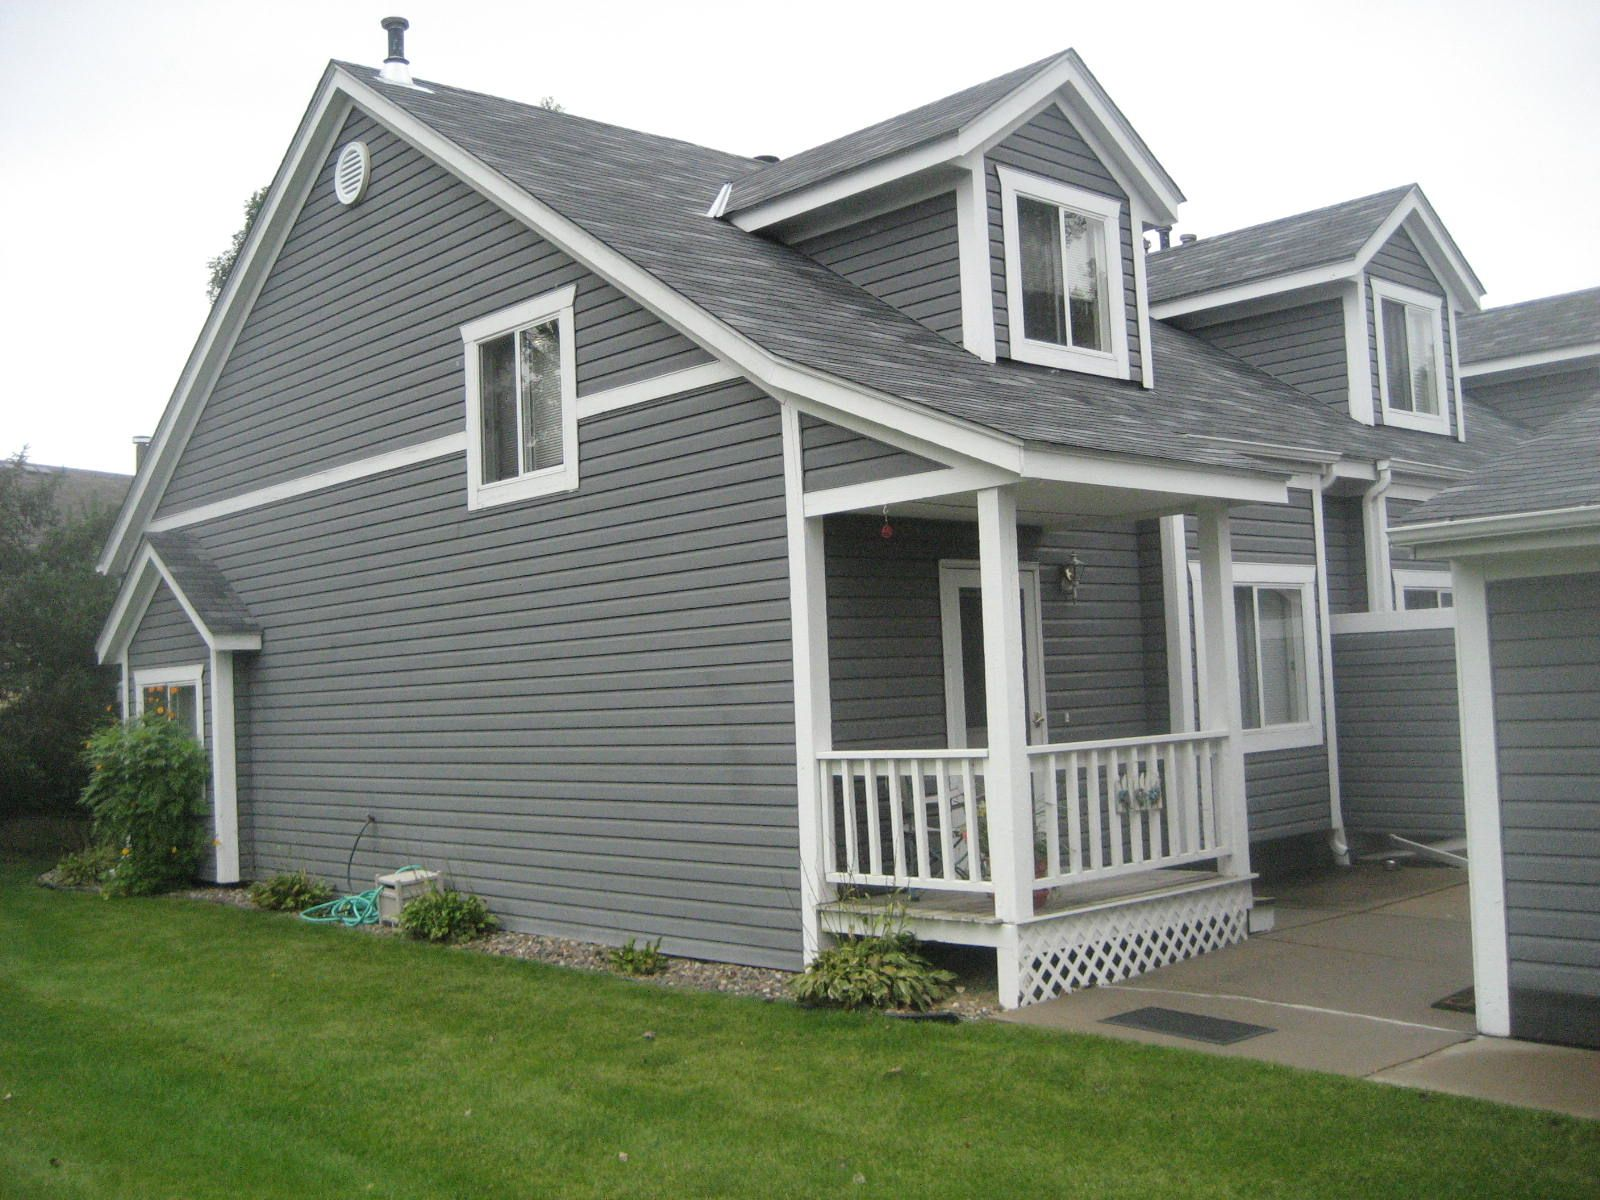 Lp Smartside Lap Siding Exterior Renovation Pinterest